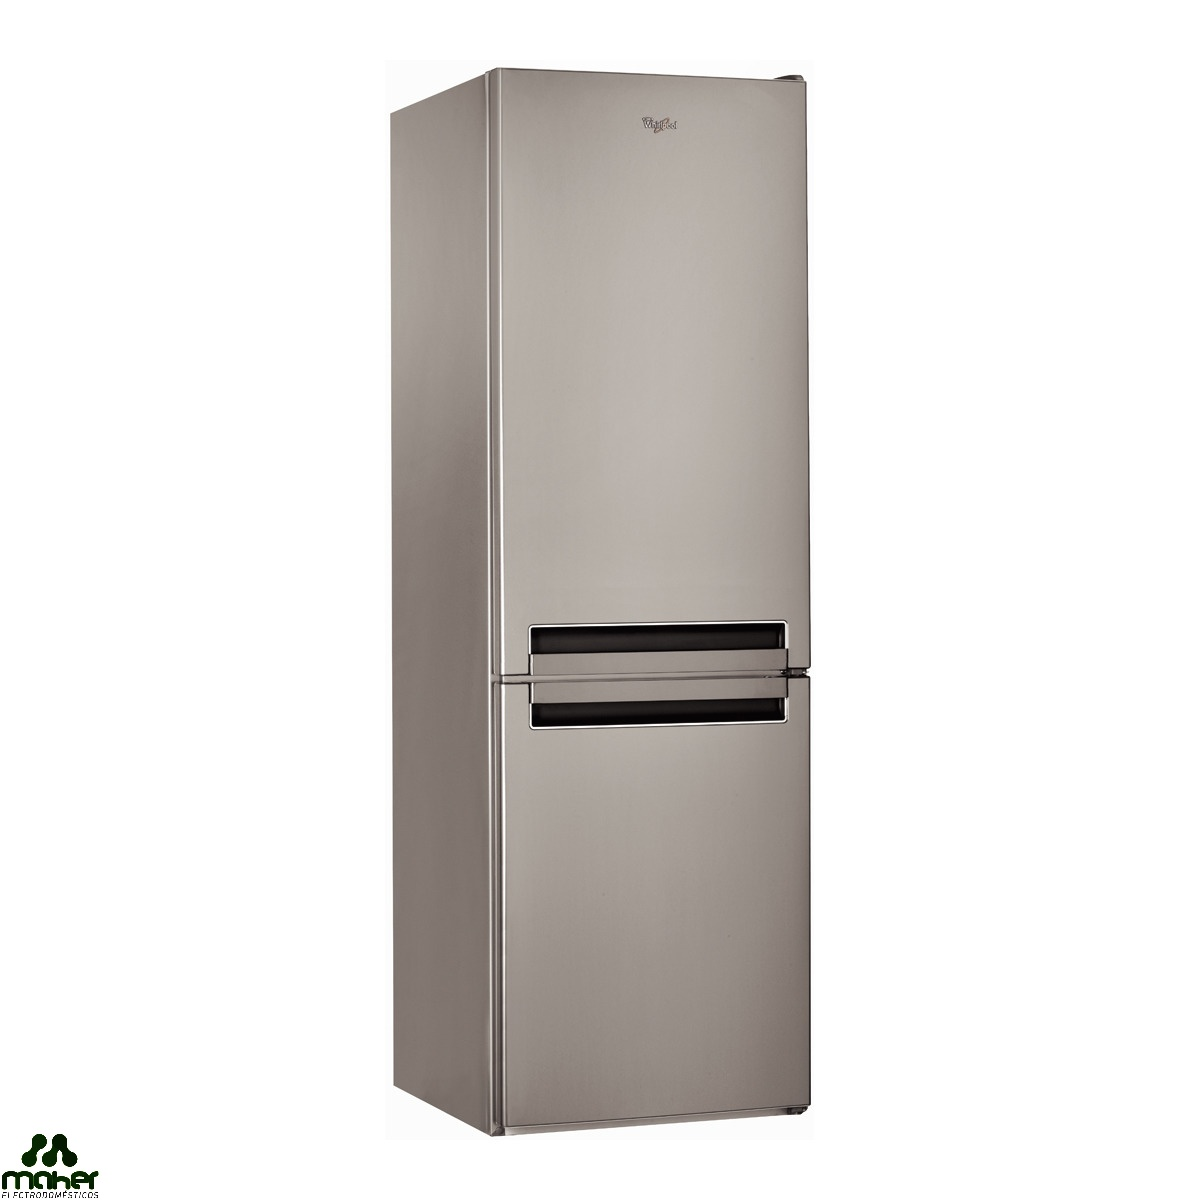 FRIGORÍFICO COMBI NO - FROST A++ WHIRLPOOL BSNF9152OX